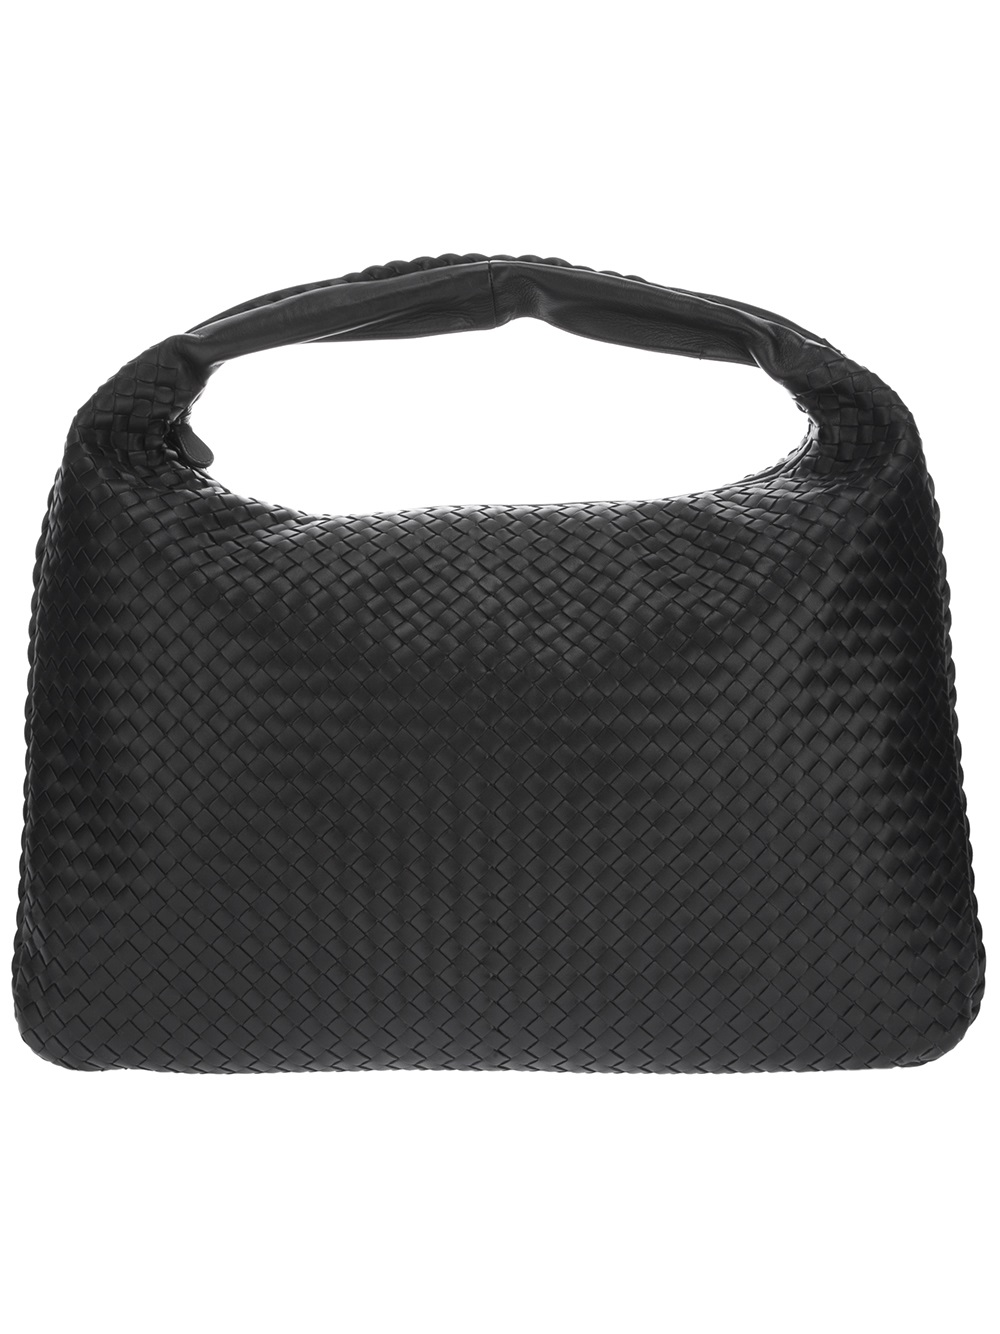 veneta black singles Buy bottega veneta women's black pebbled leather panelled single handle hobo bag, starting at $653 similar products also available sale now on.